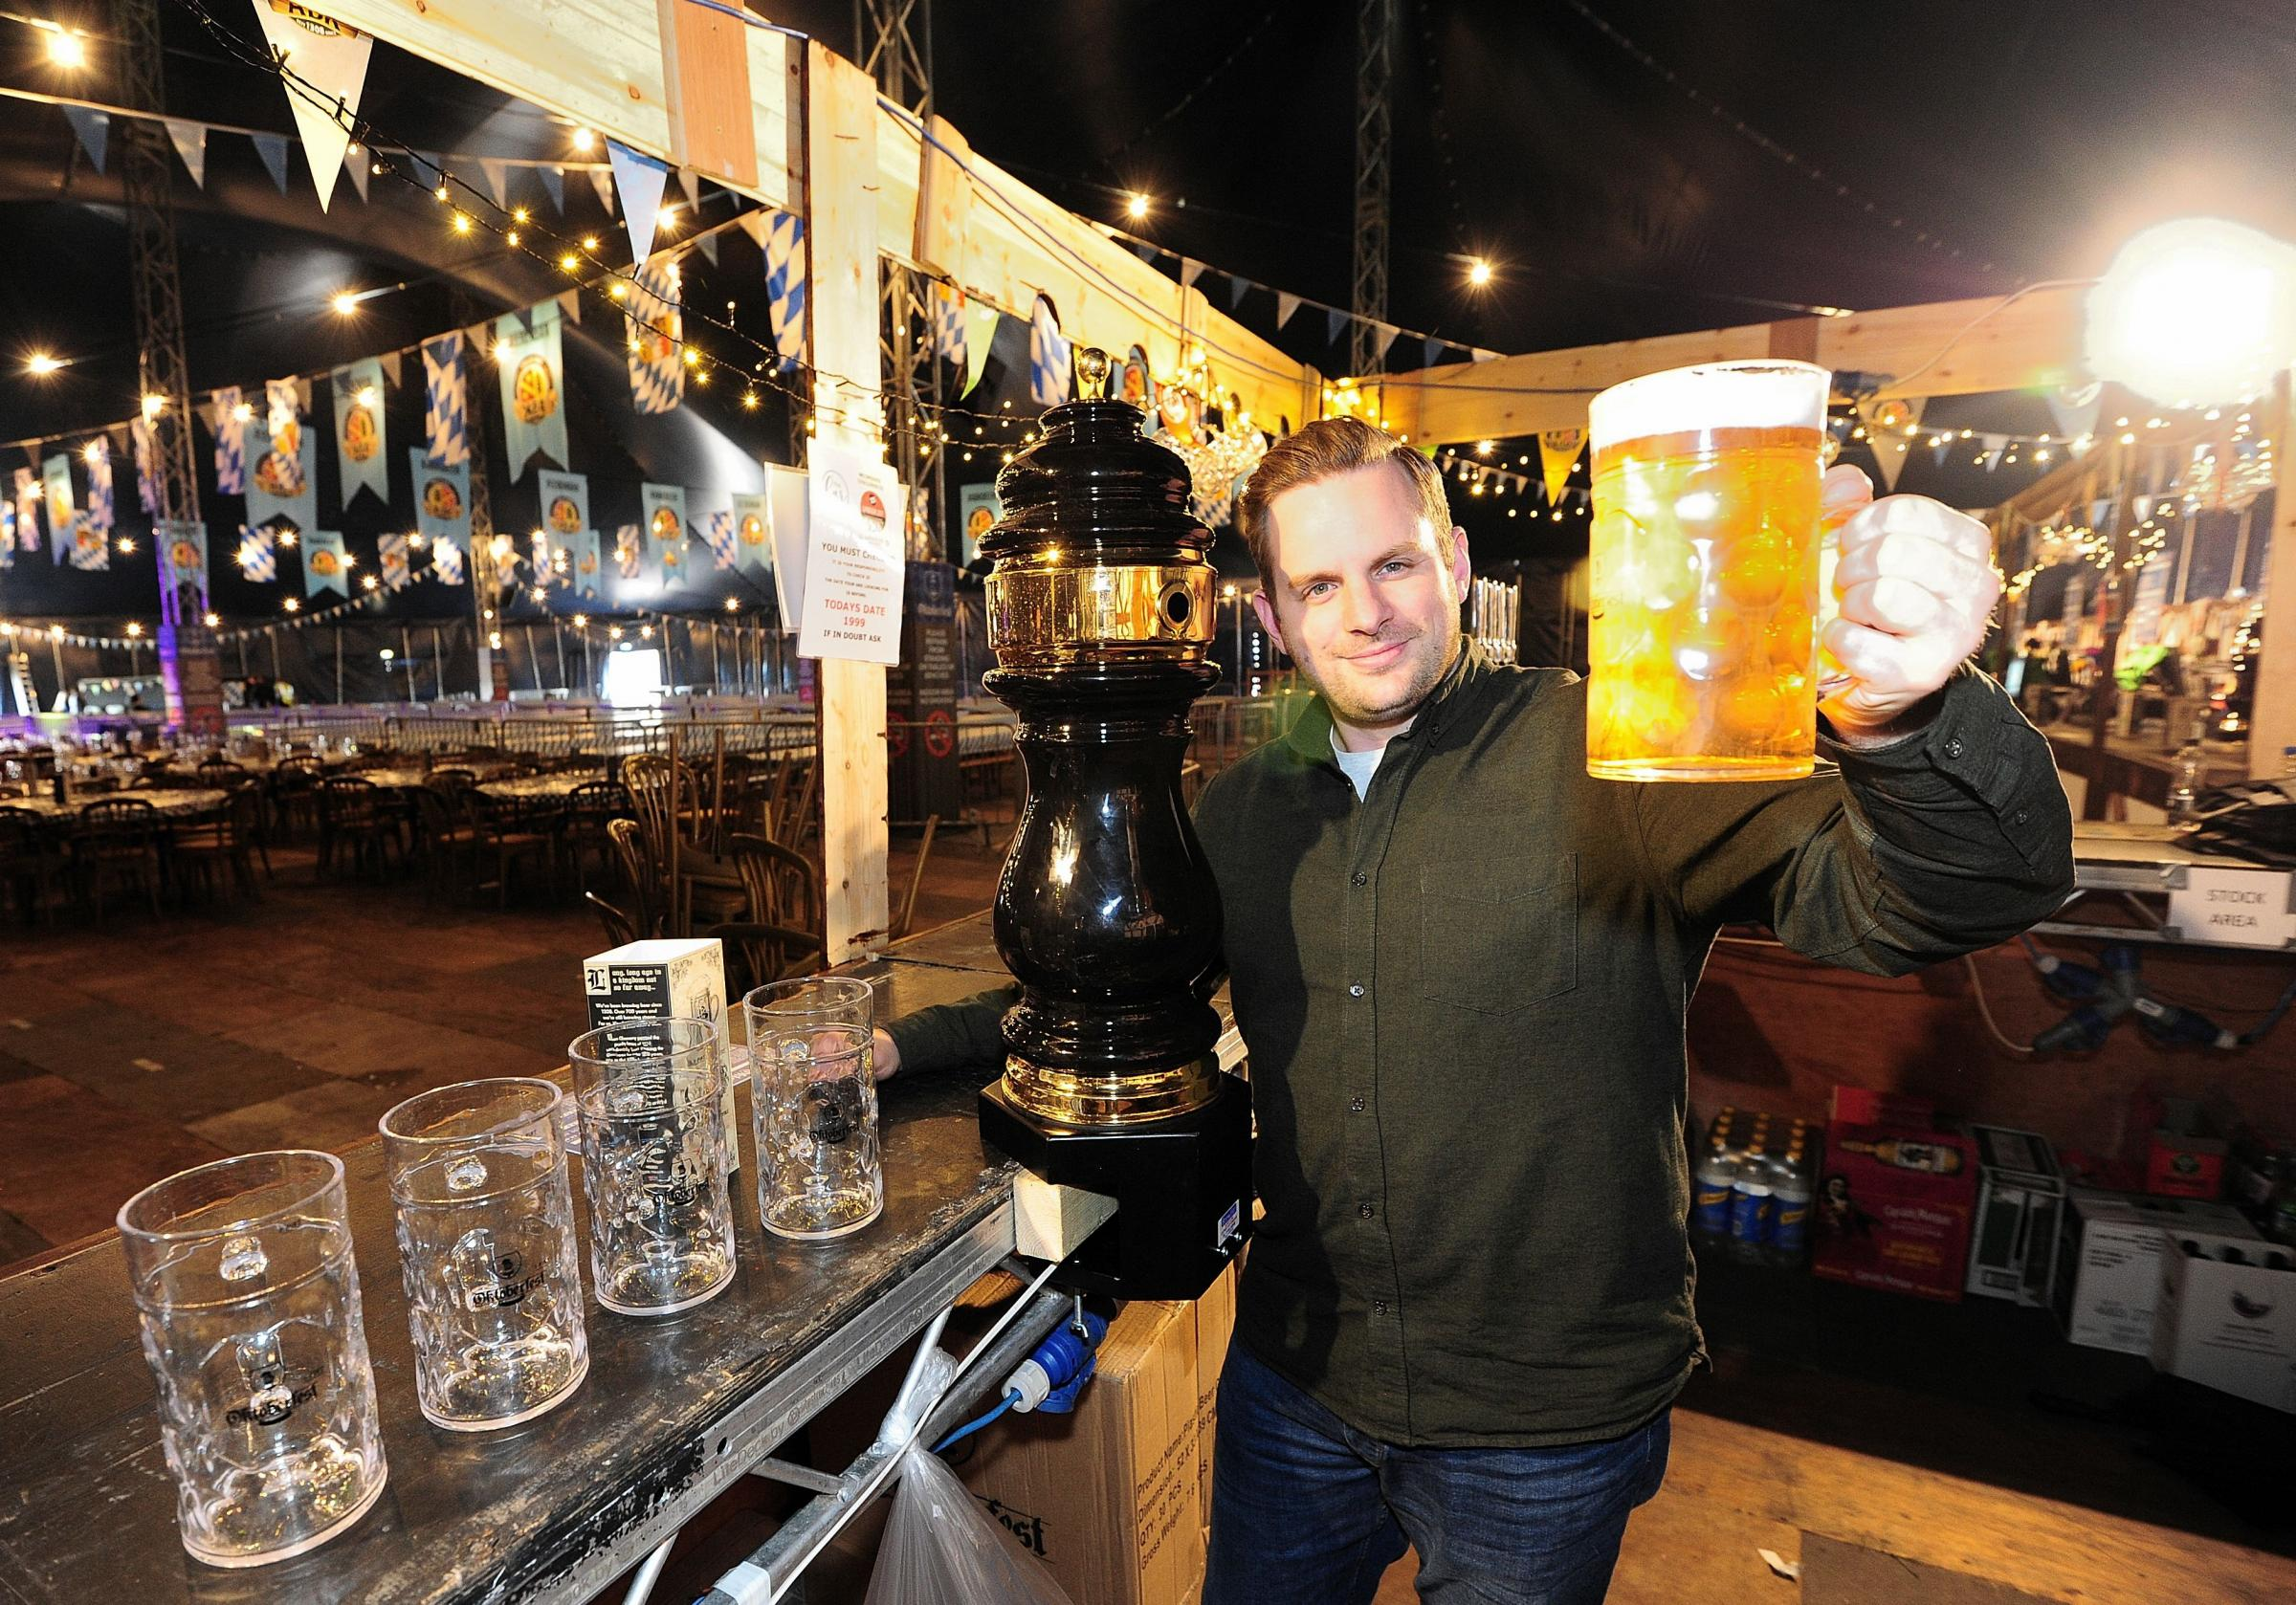 Event director Martin Barker preparing for last year's Oktoberfest at Worcester Racecourse, Pitchcroft. Pic Jonathan Barry